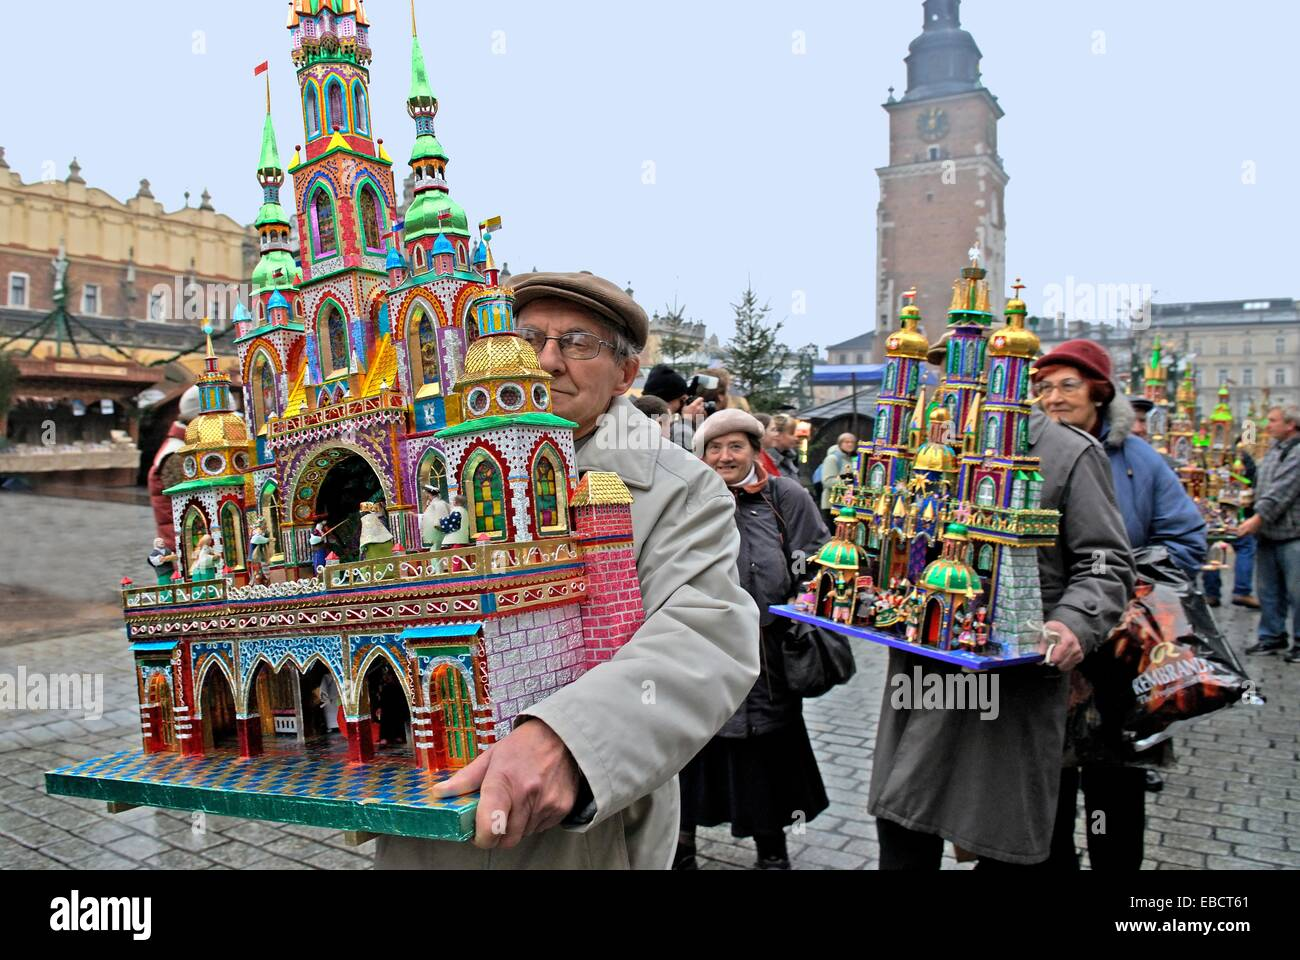 A Competition And Annual Exhibition Of Christmas Cribs Stand On The Main Market Square Krakow Poland